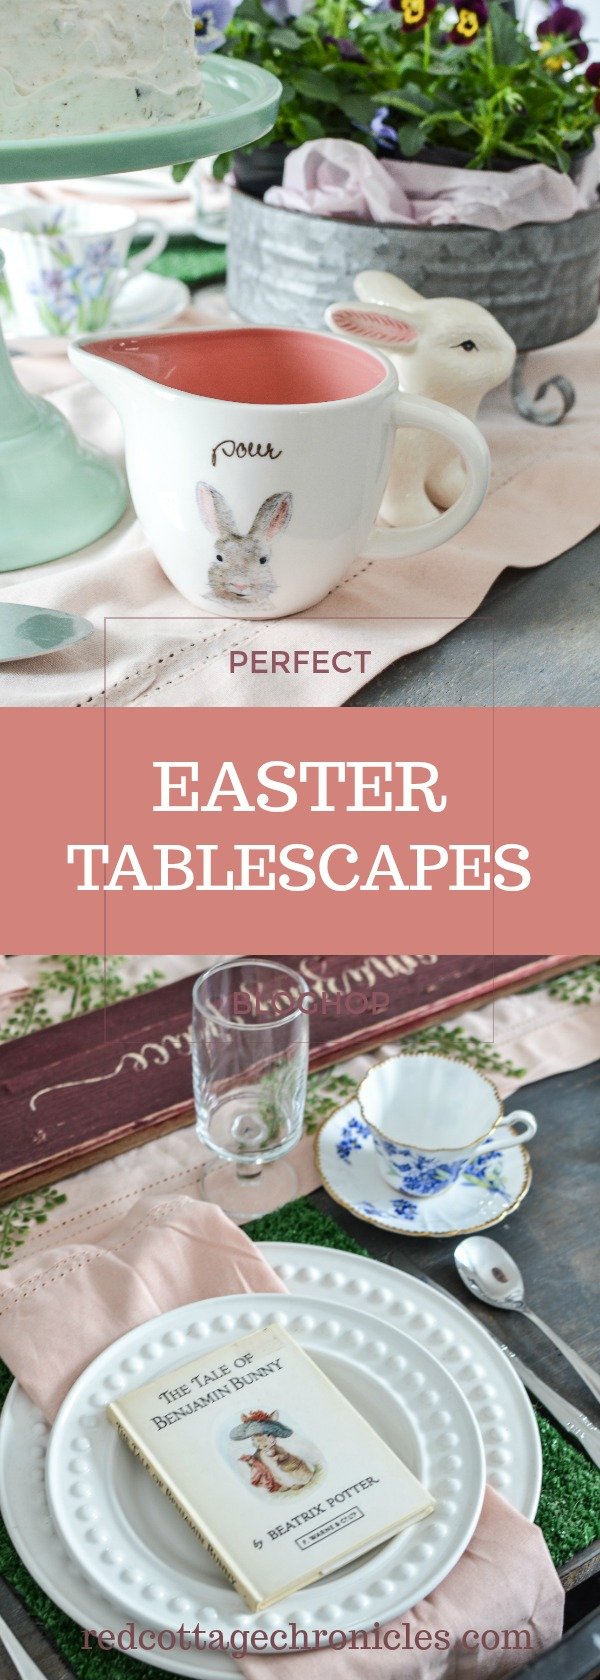 23 Easter Tablescapes